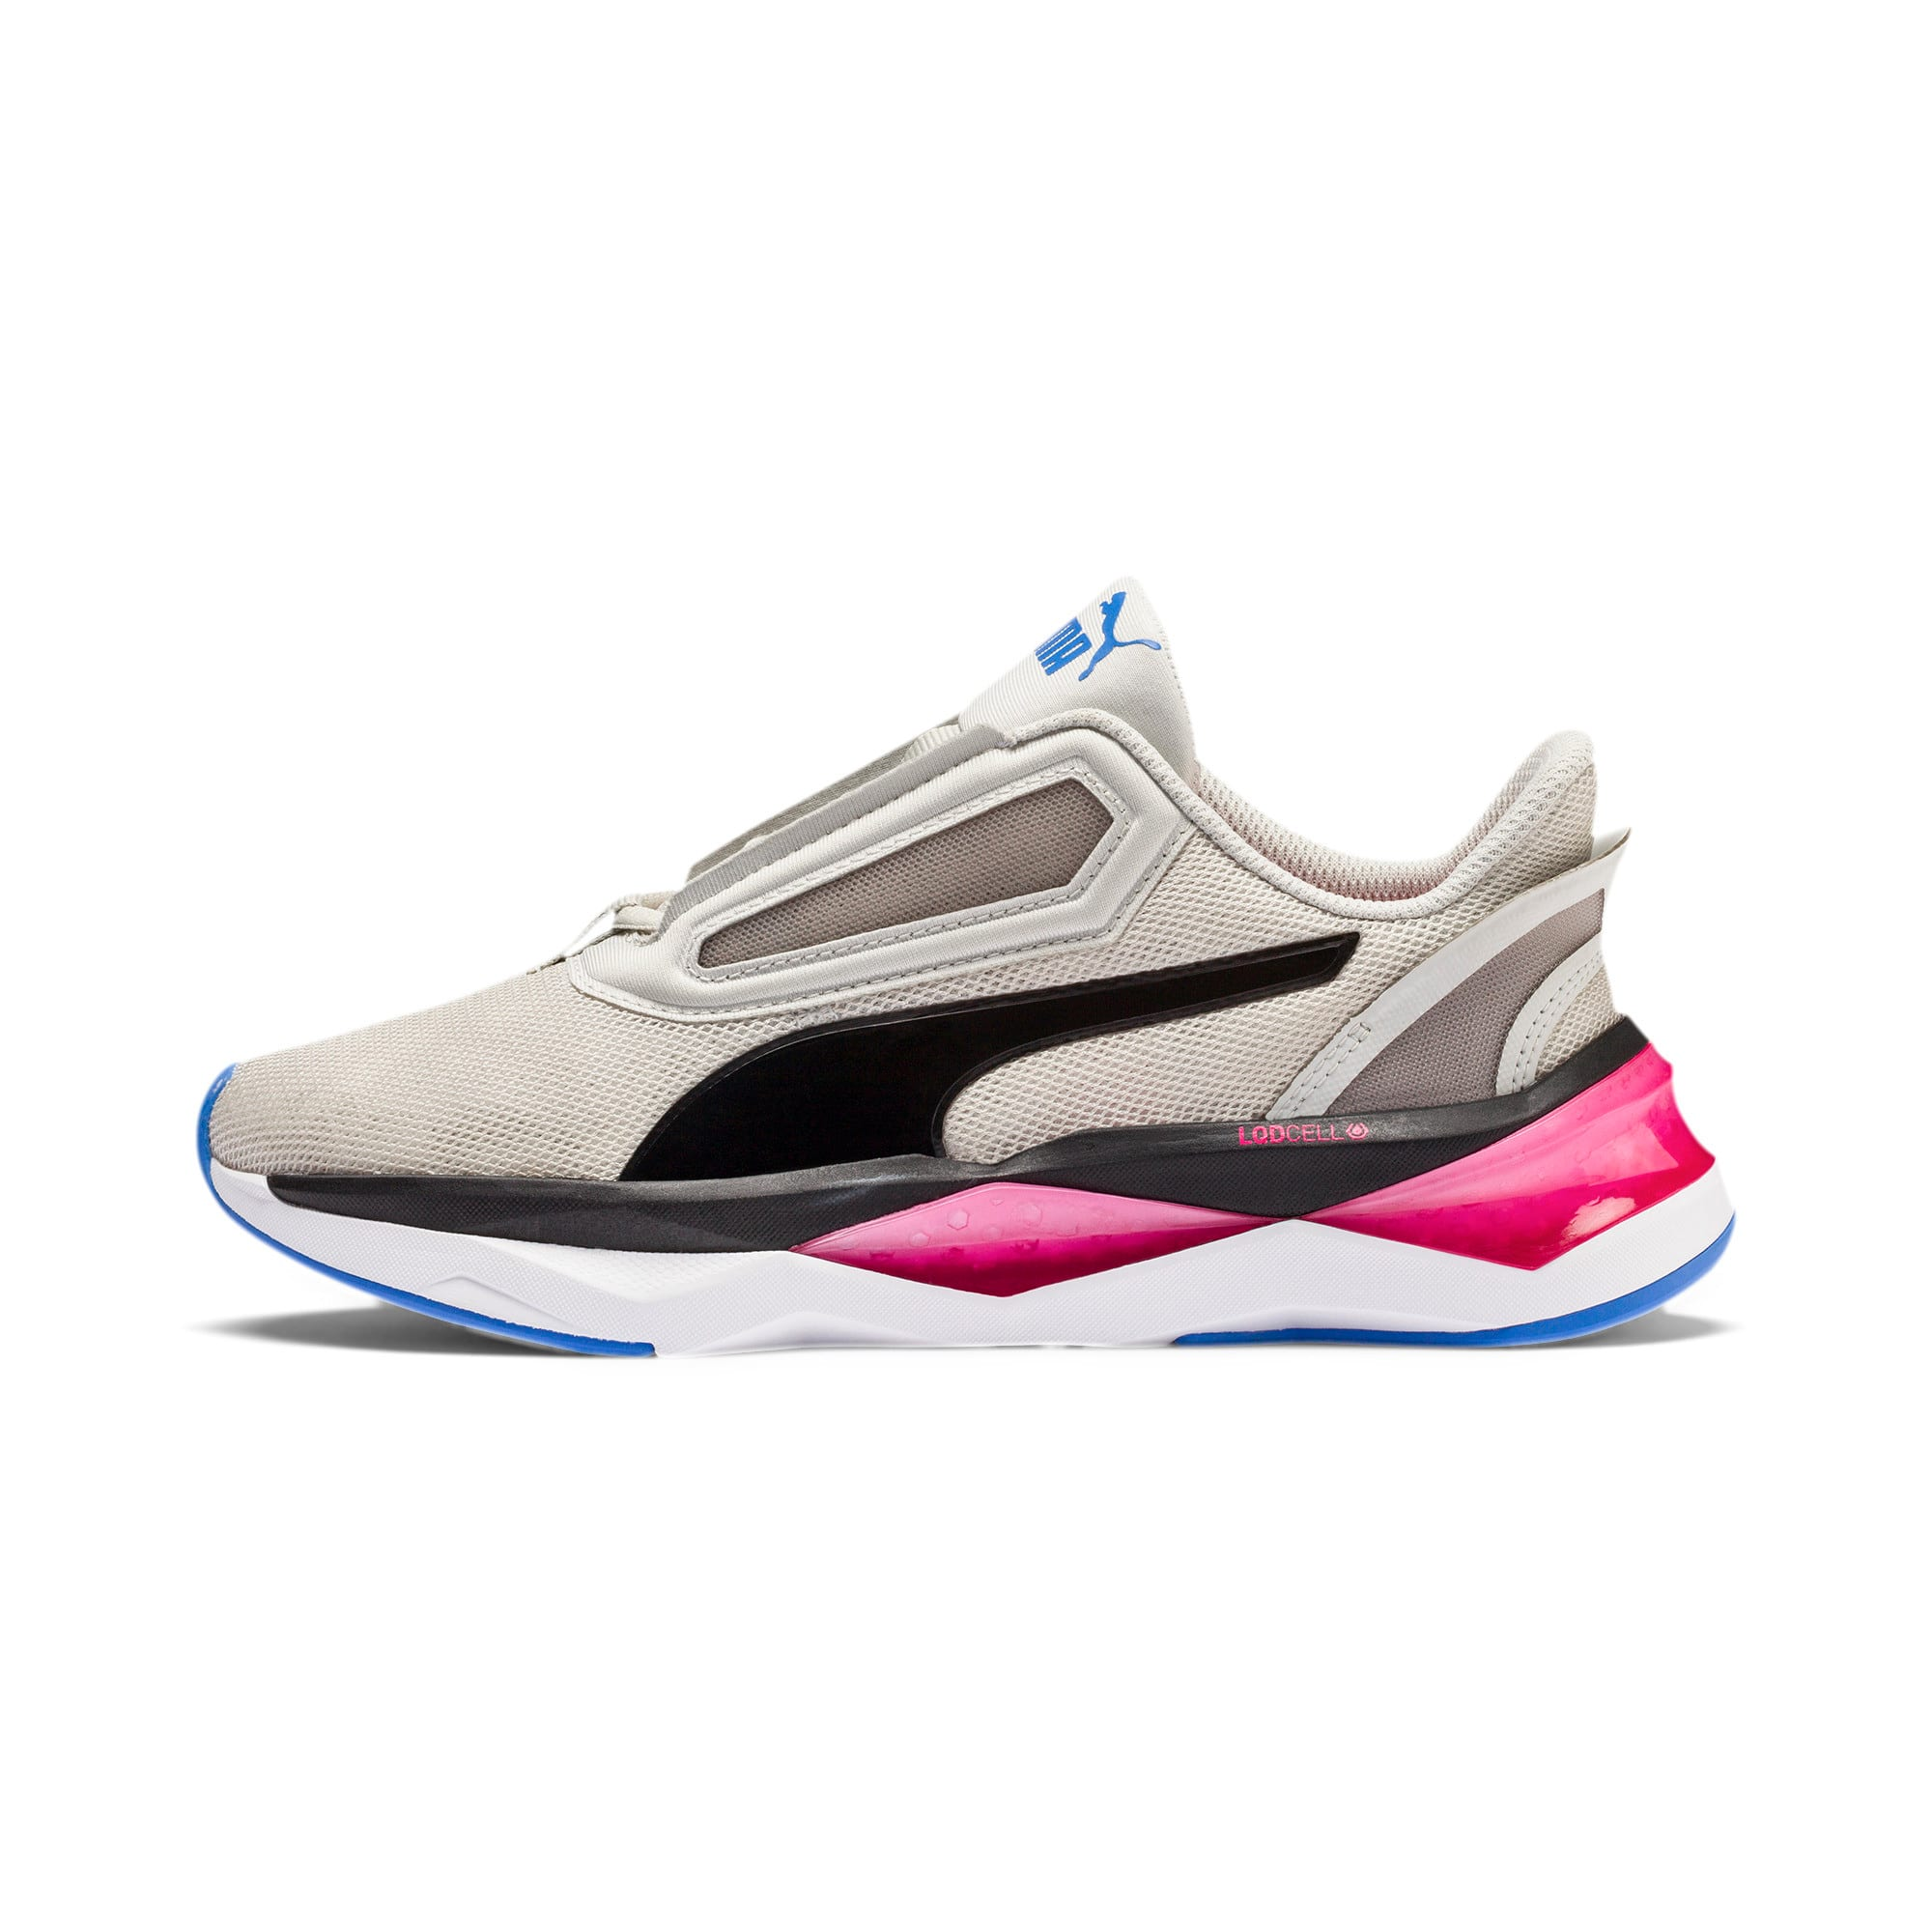 LQDCELL Shatter XT Shift Women's Training Shoes, Glacier Gray-Puma White, large